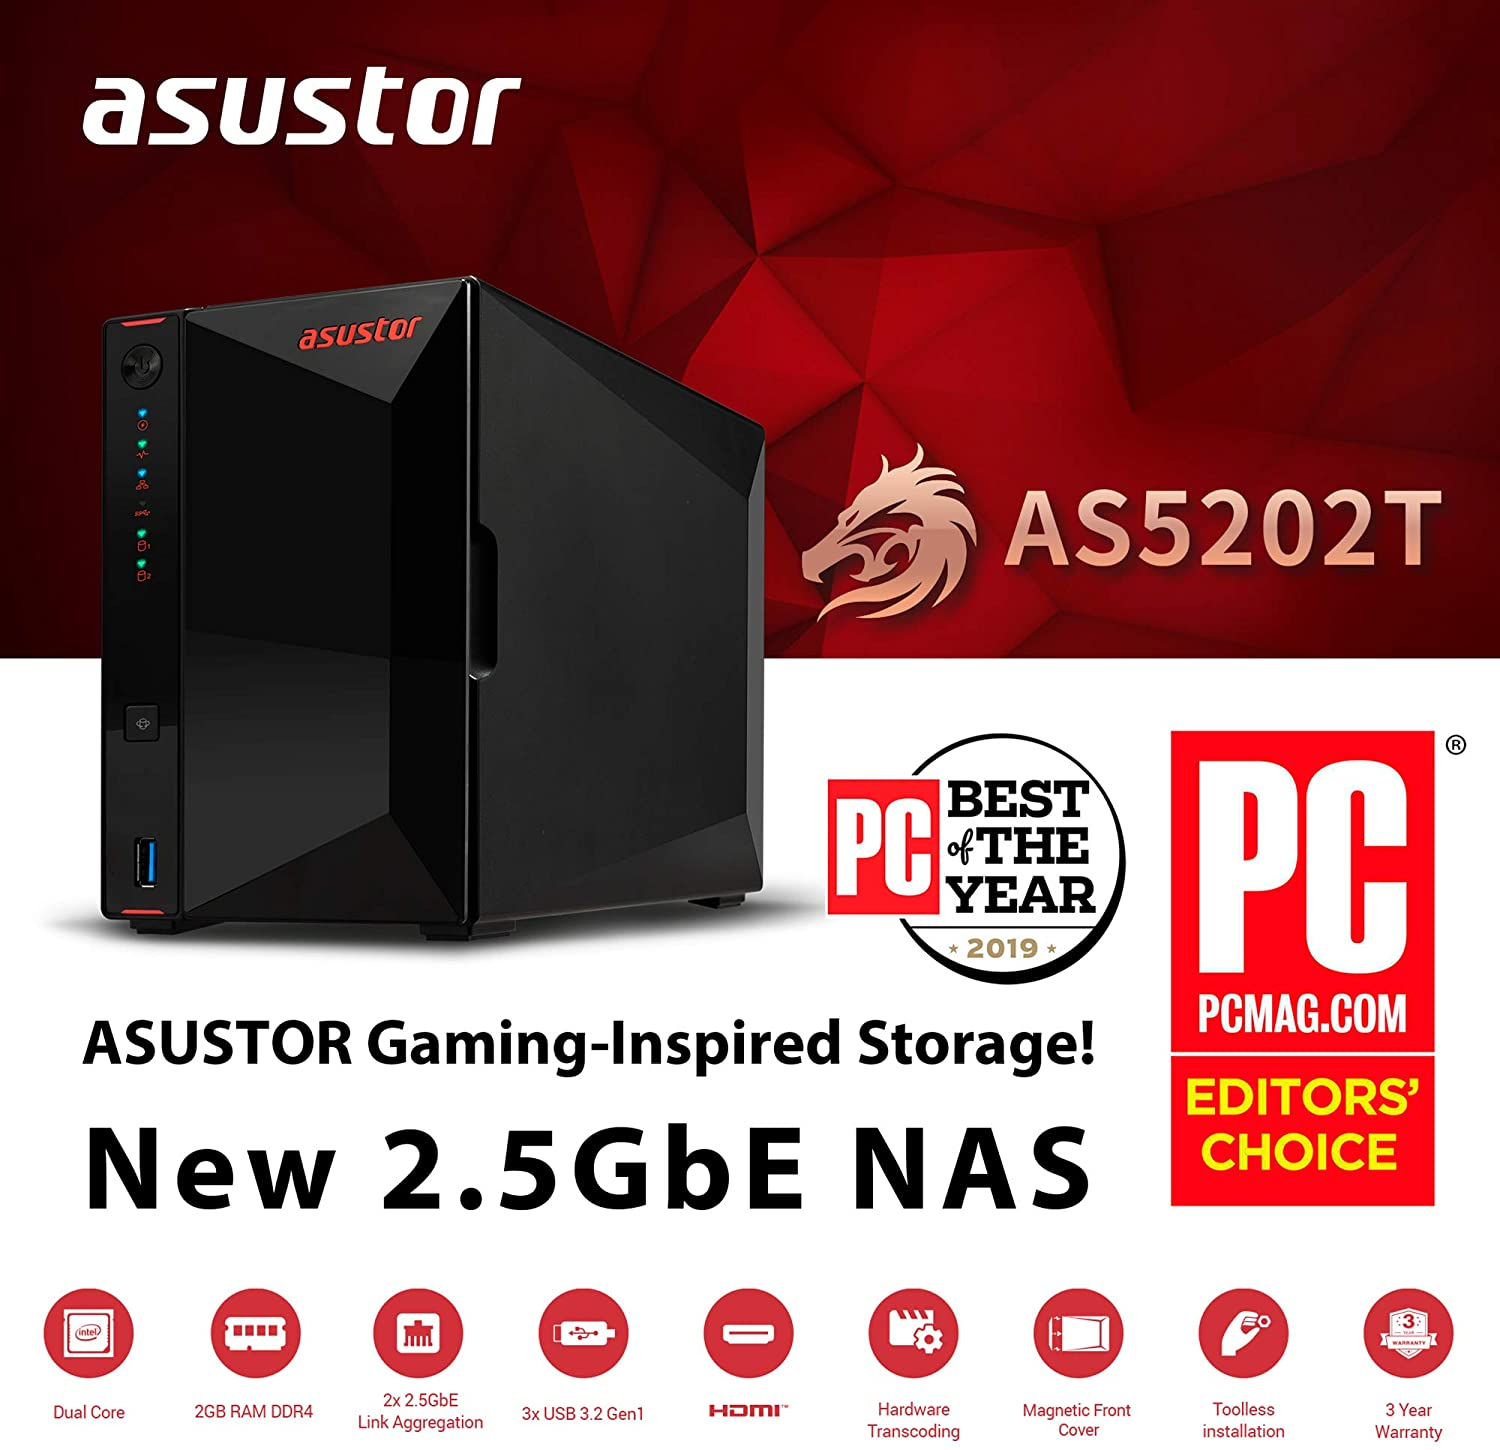 2 Bay Diskless NAS Intel J4005 2.0GHz Dual-Core Two 2.5GbE Port Personal Private Cloud 4GB eMMC Flash Memory 2GB RAM DDR4 Asustor Nimbustor 2 Gaming Inspired Network Attached Storage AS5202T